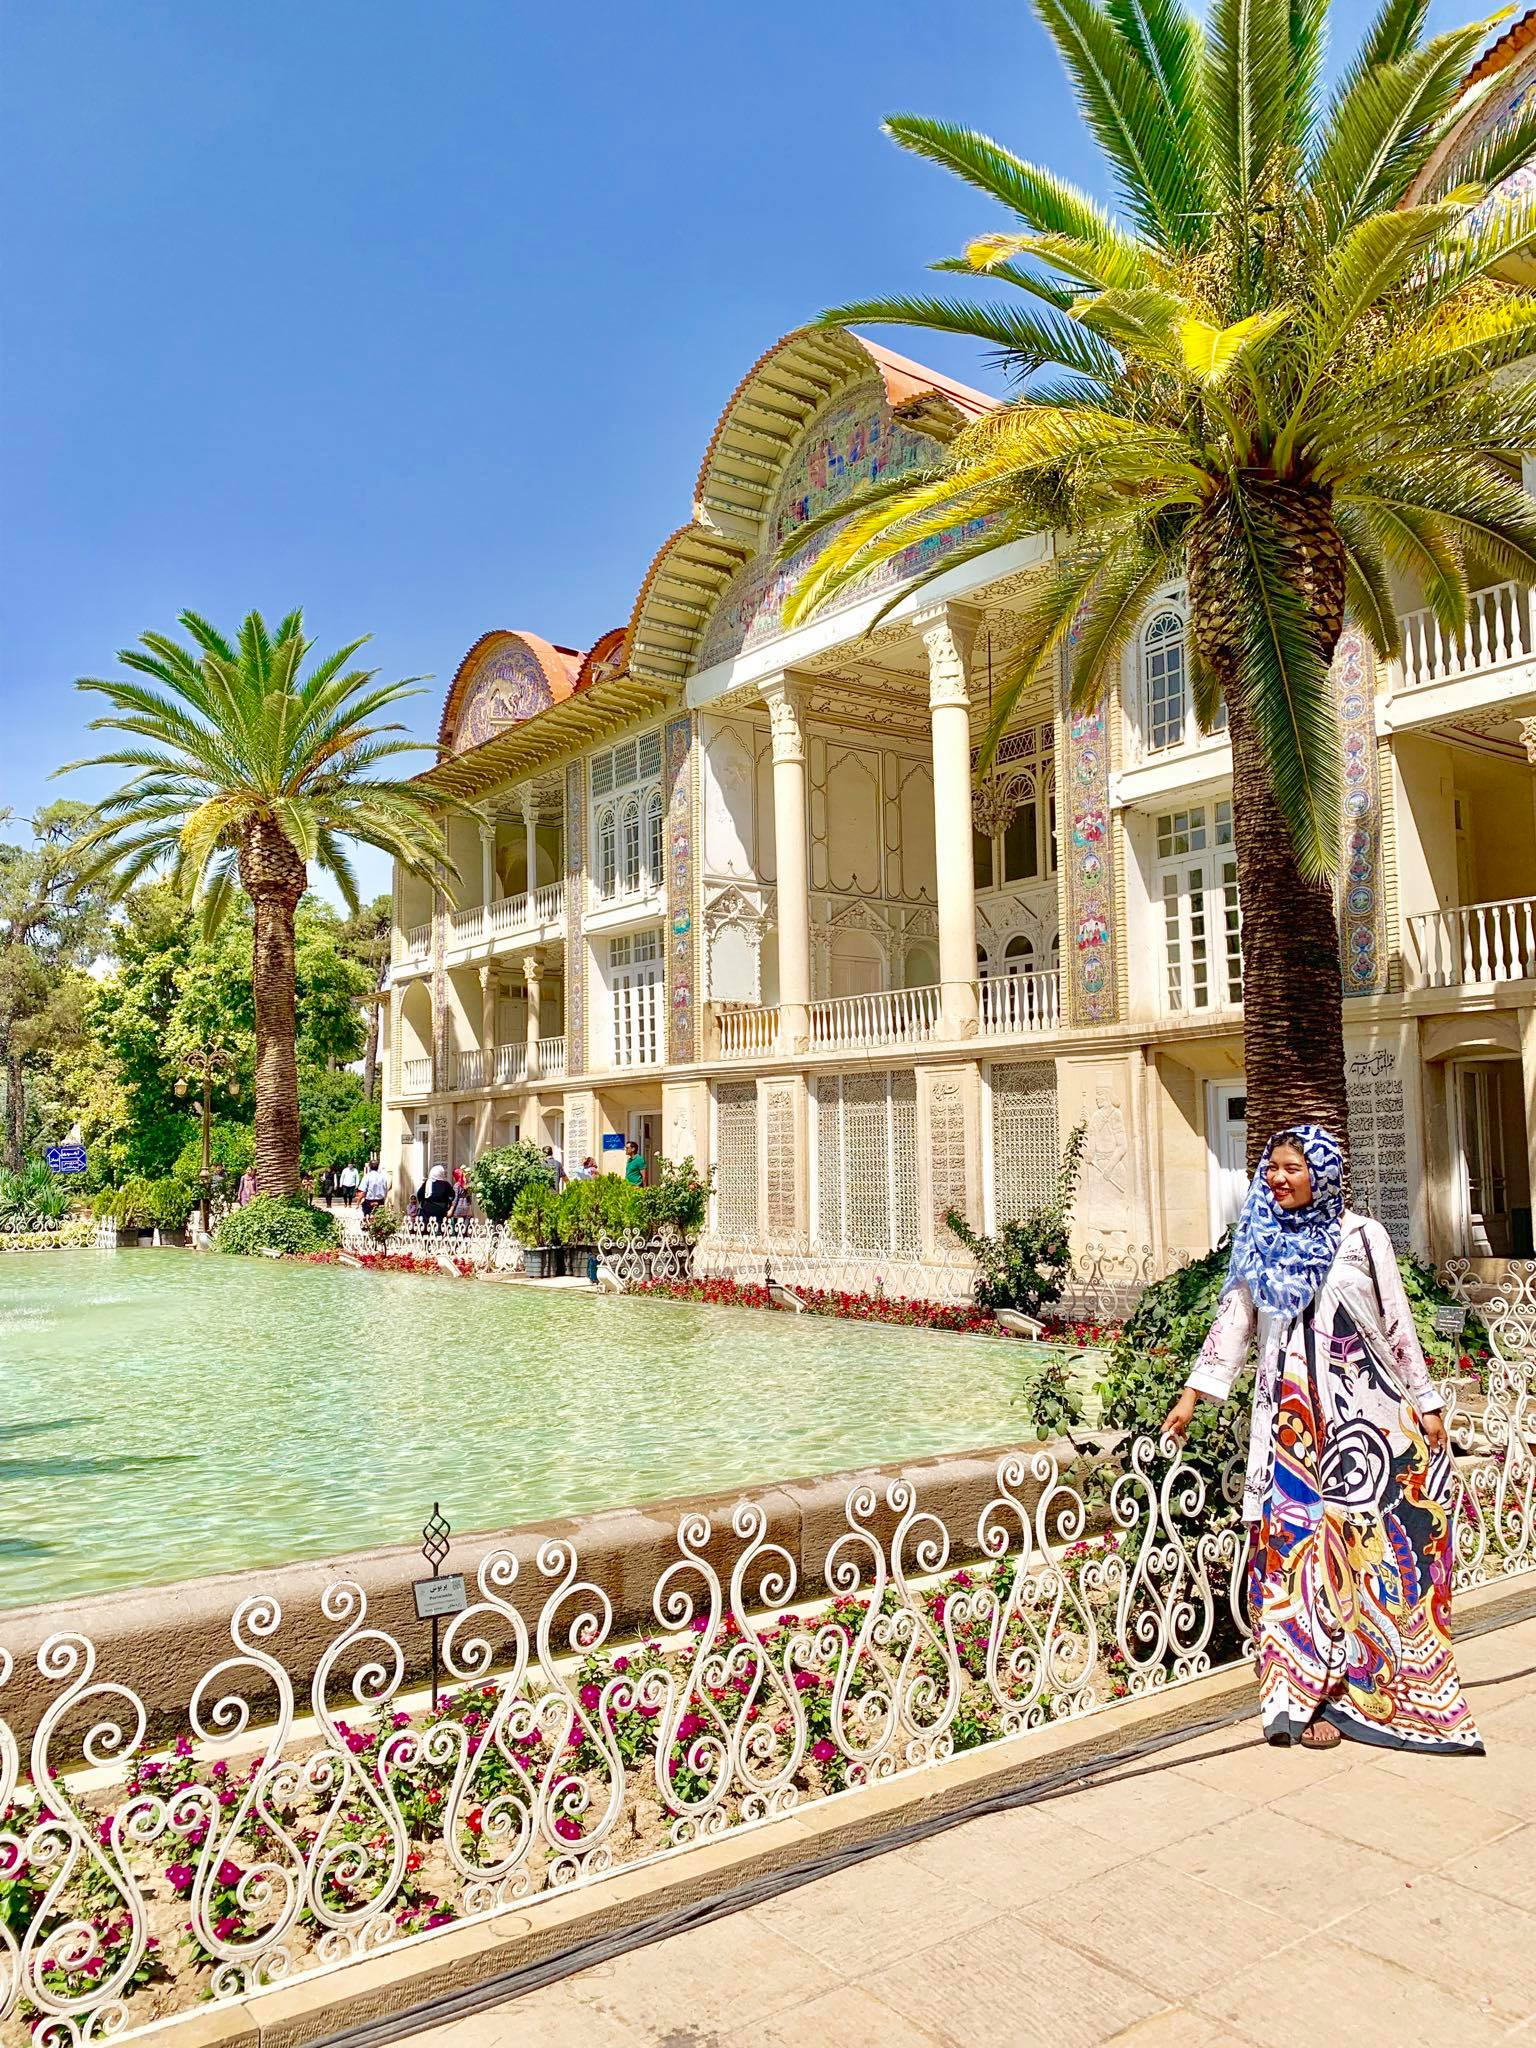 Kach Solo Travels in 2019 Full day tour of Shiraz1.jpg